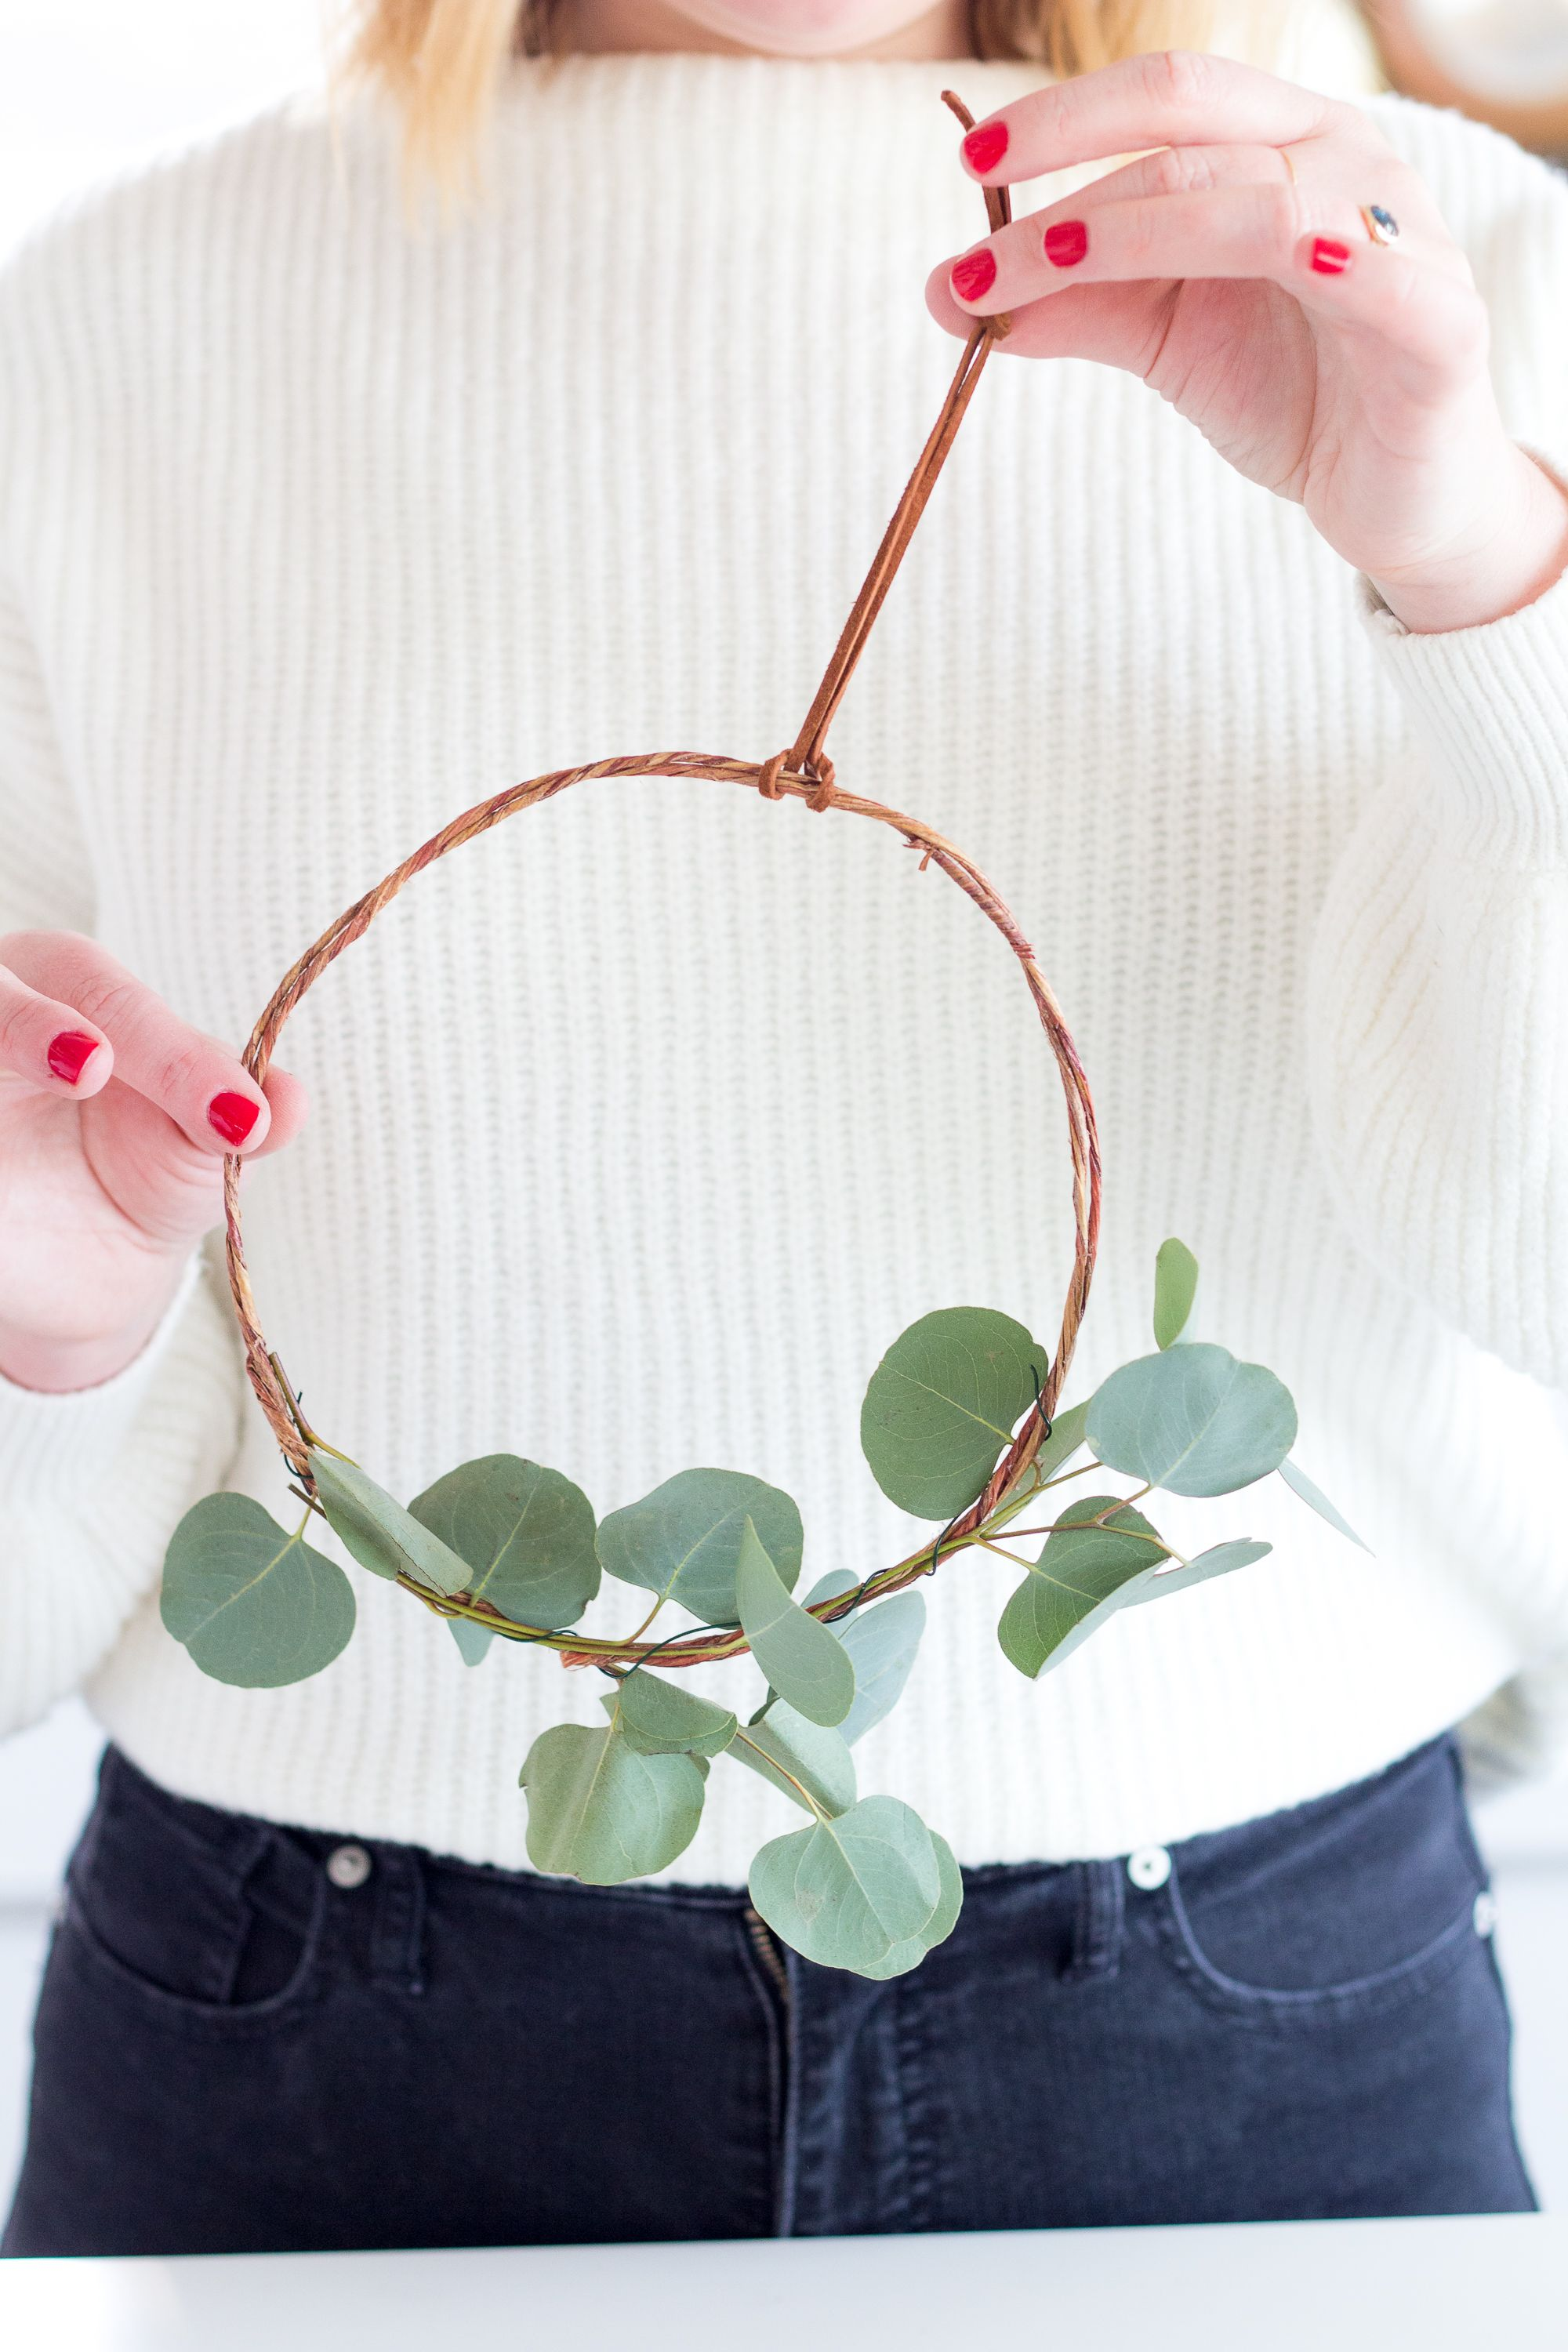 DIY Eucalyptus Wreath in 2020 (With images) Diy crafts